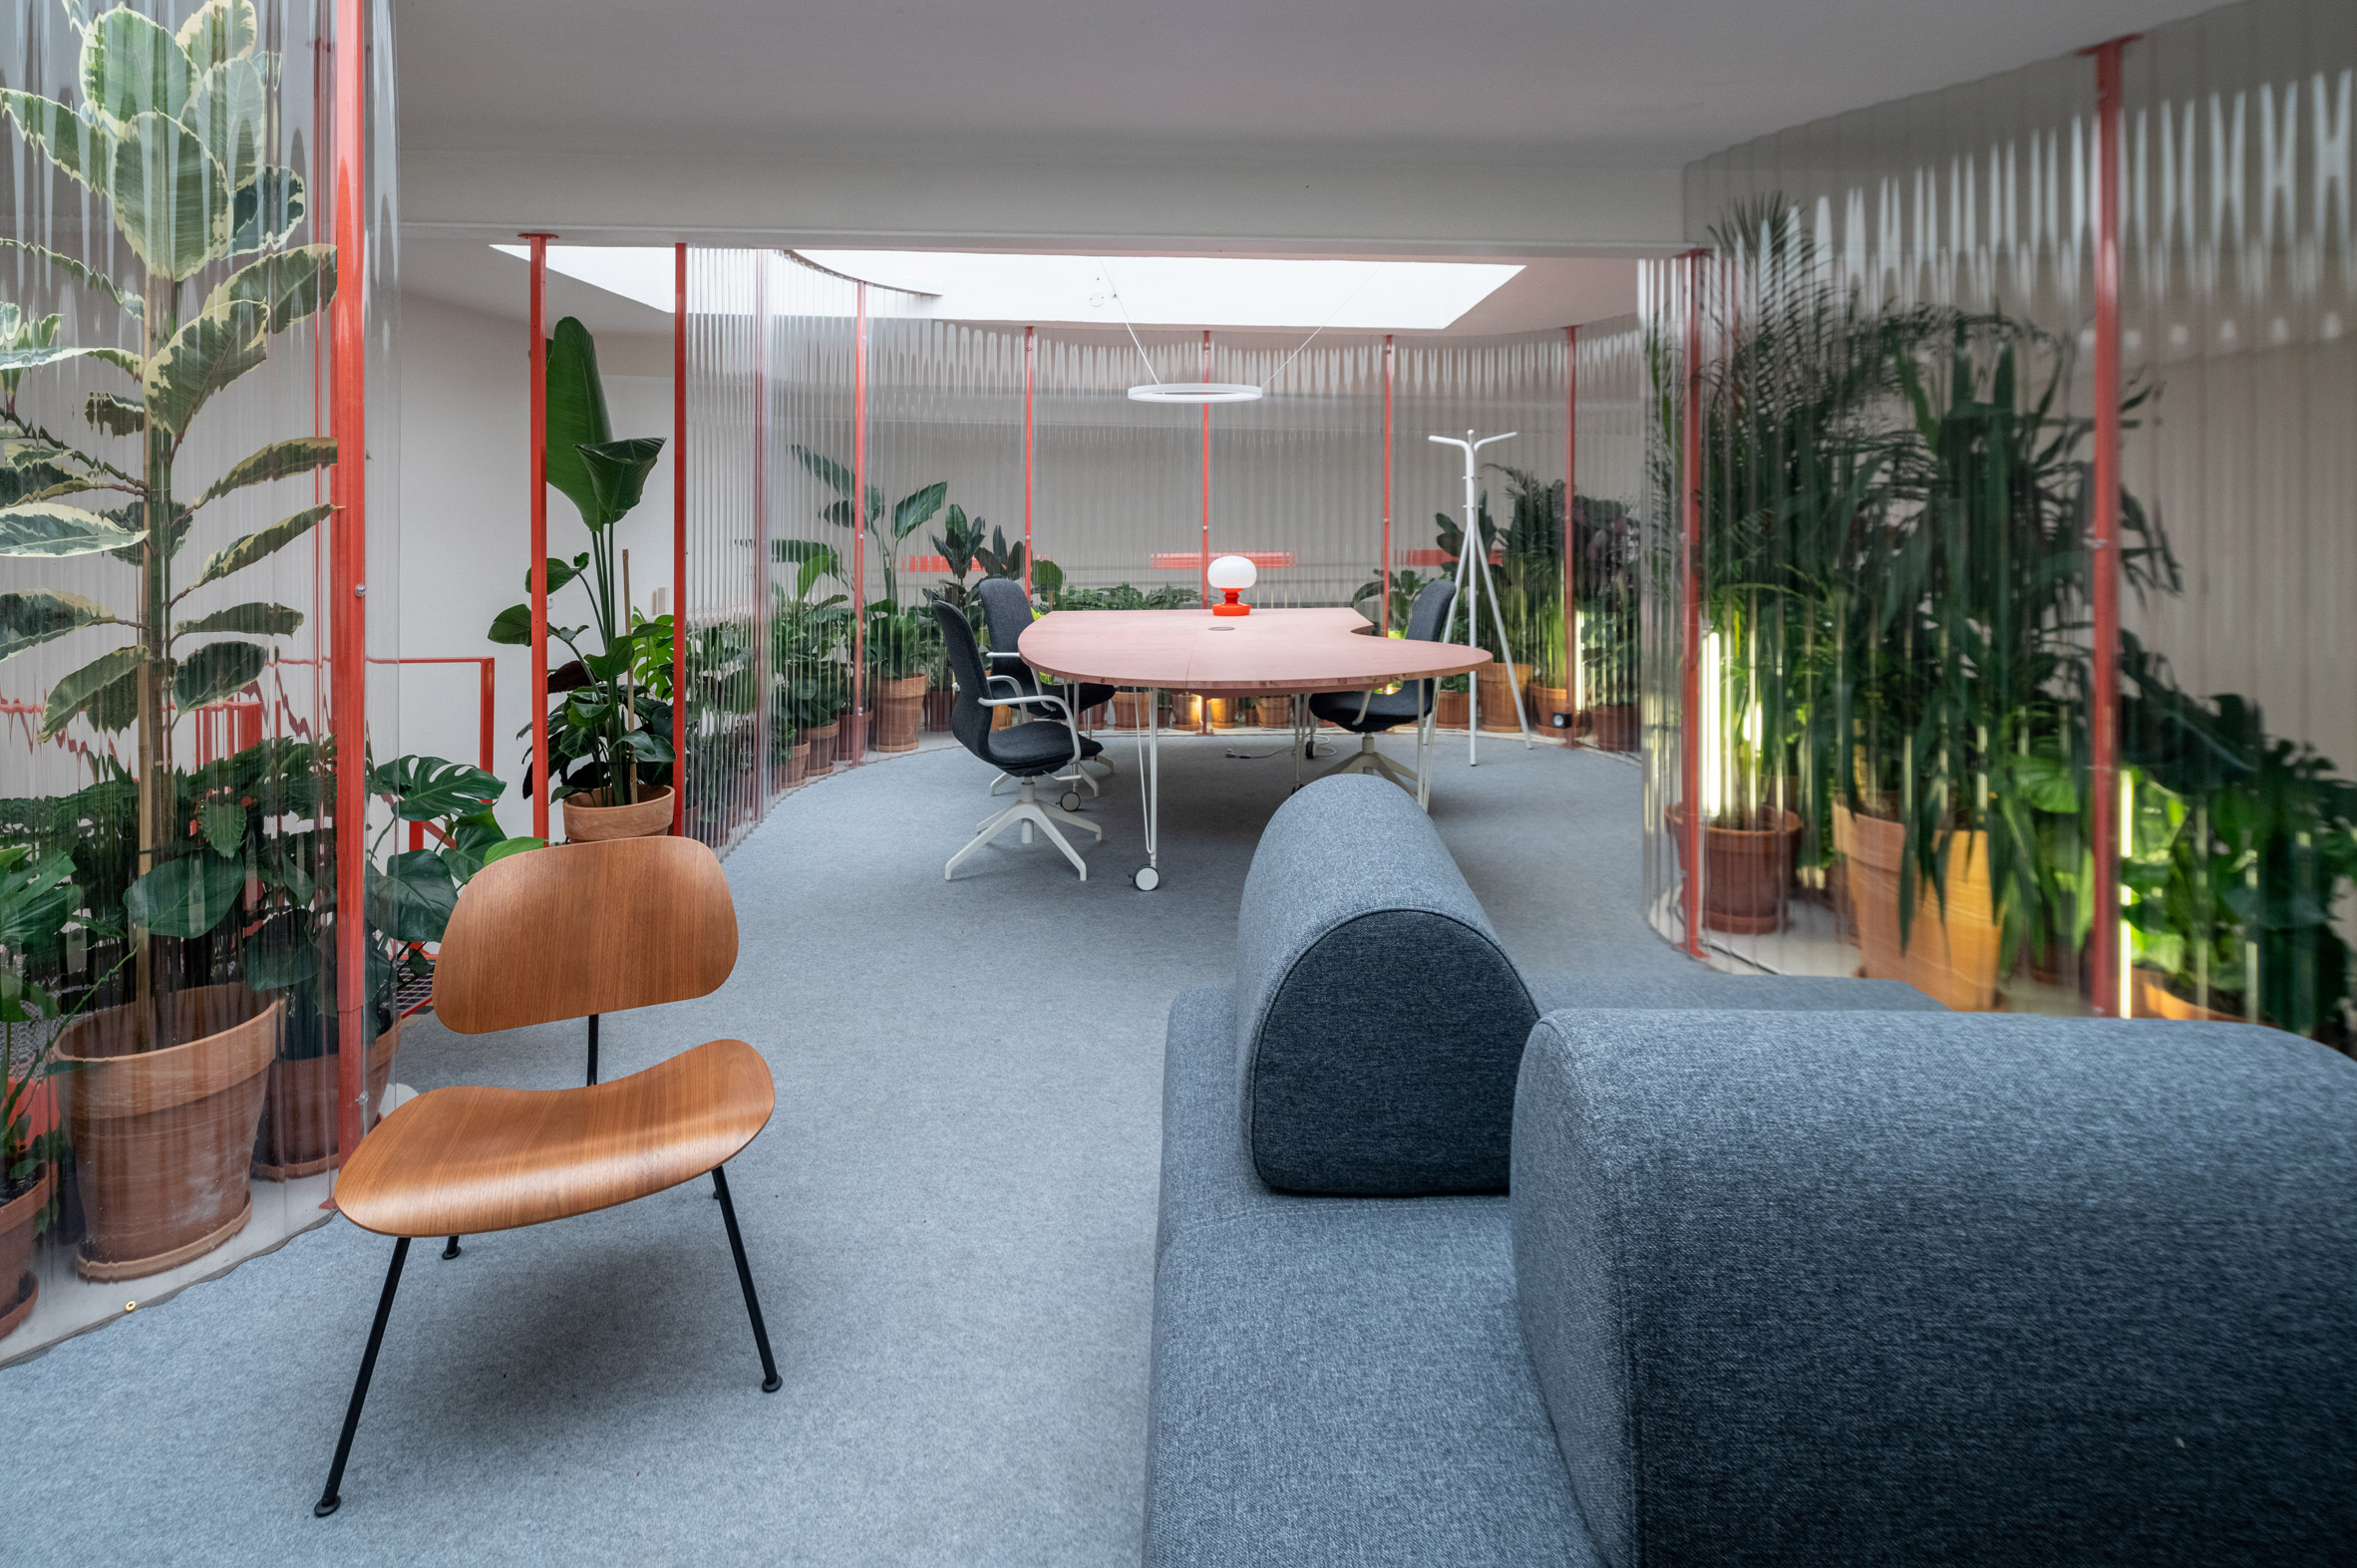 Mezzanine workspace area wrapped in transparent corrugated plastic in Grounds Coffee Hub